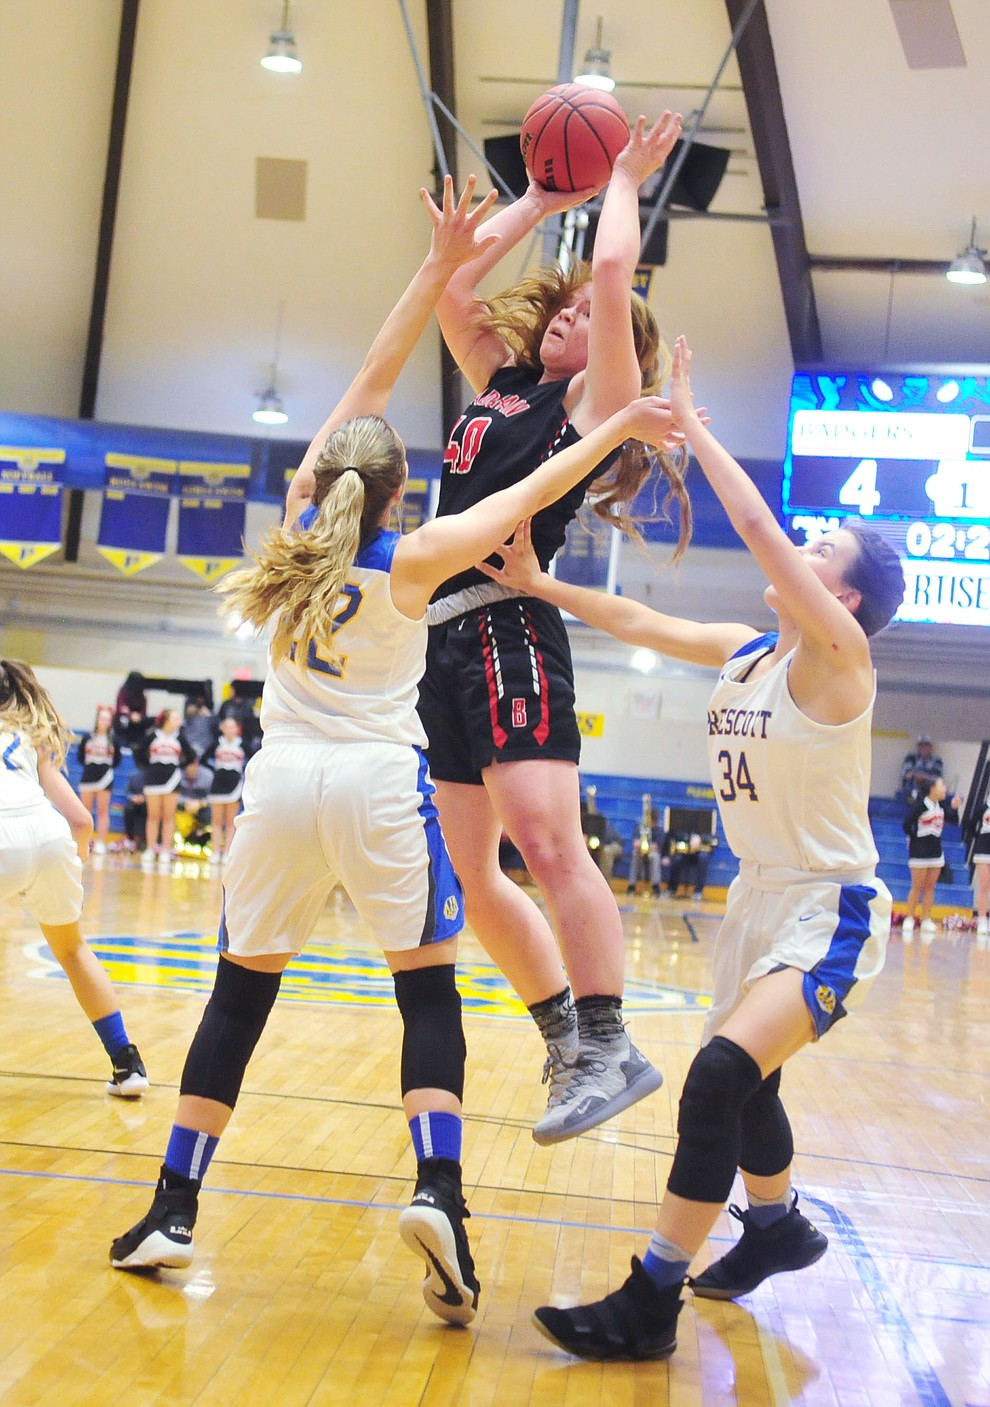 Bradshaw Mountain's Delanie Clark shoots over a pair of defenders as the Bears beat the Prescott Badgers Tuesday, January 8, 2019 in Prescott. (Les Stukenberg/Courier).